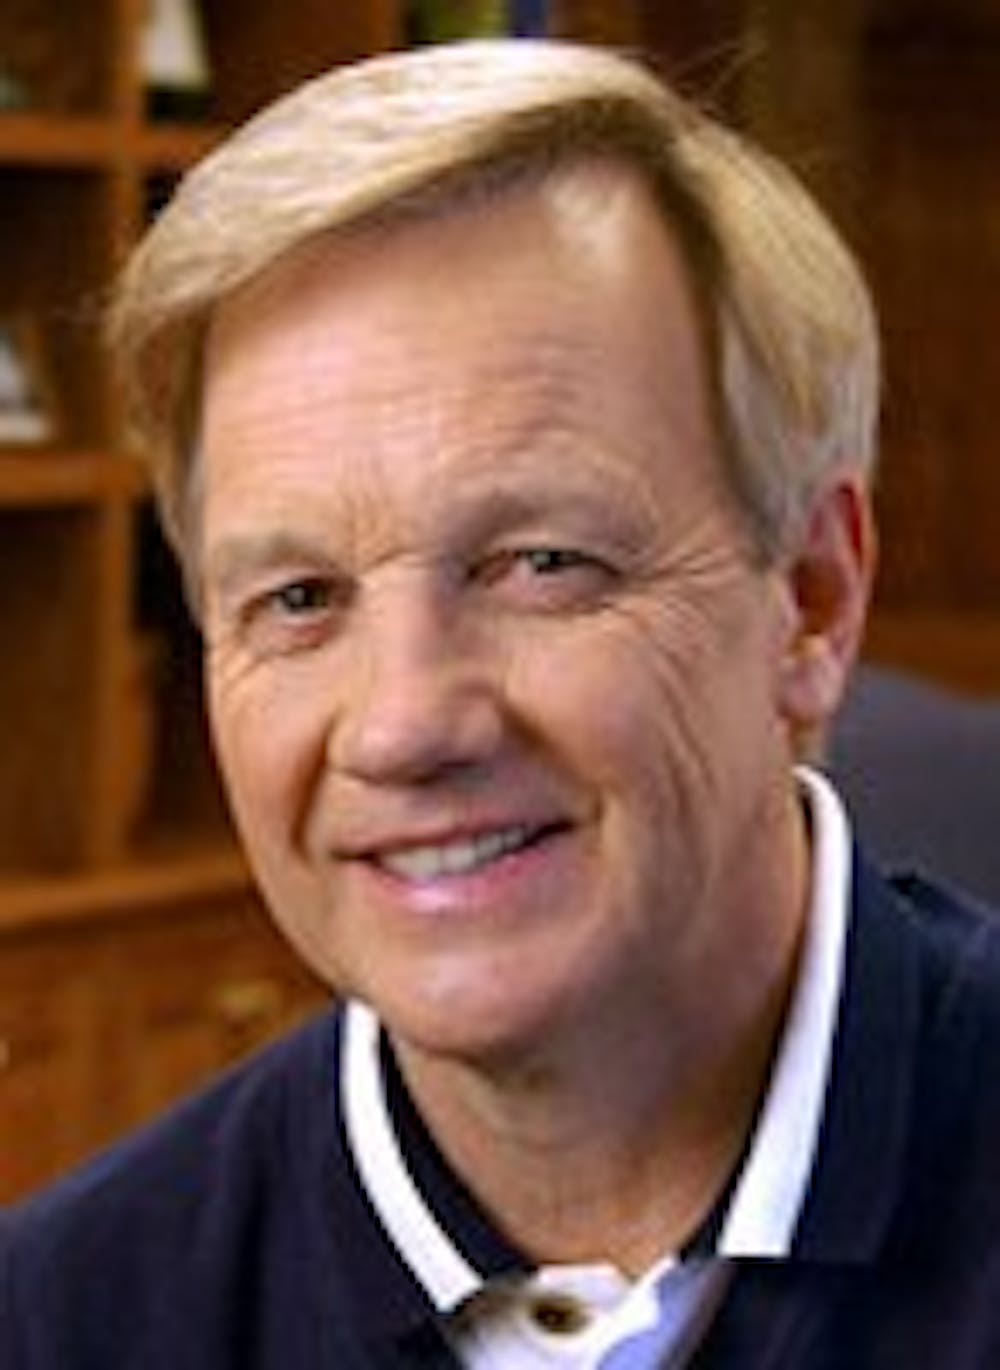 Gerald Boarman has overseen many changes to the school in his 10-year term as chancellor. DTH file